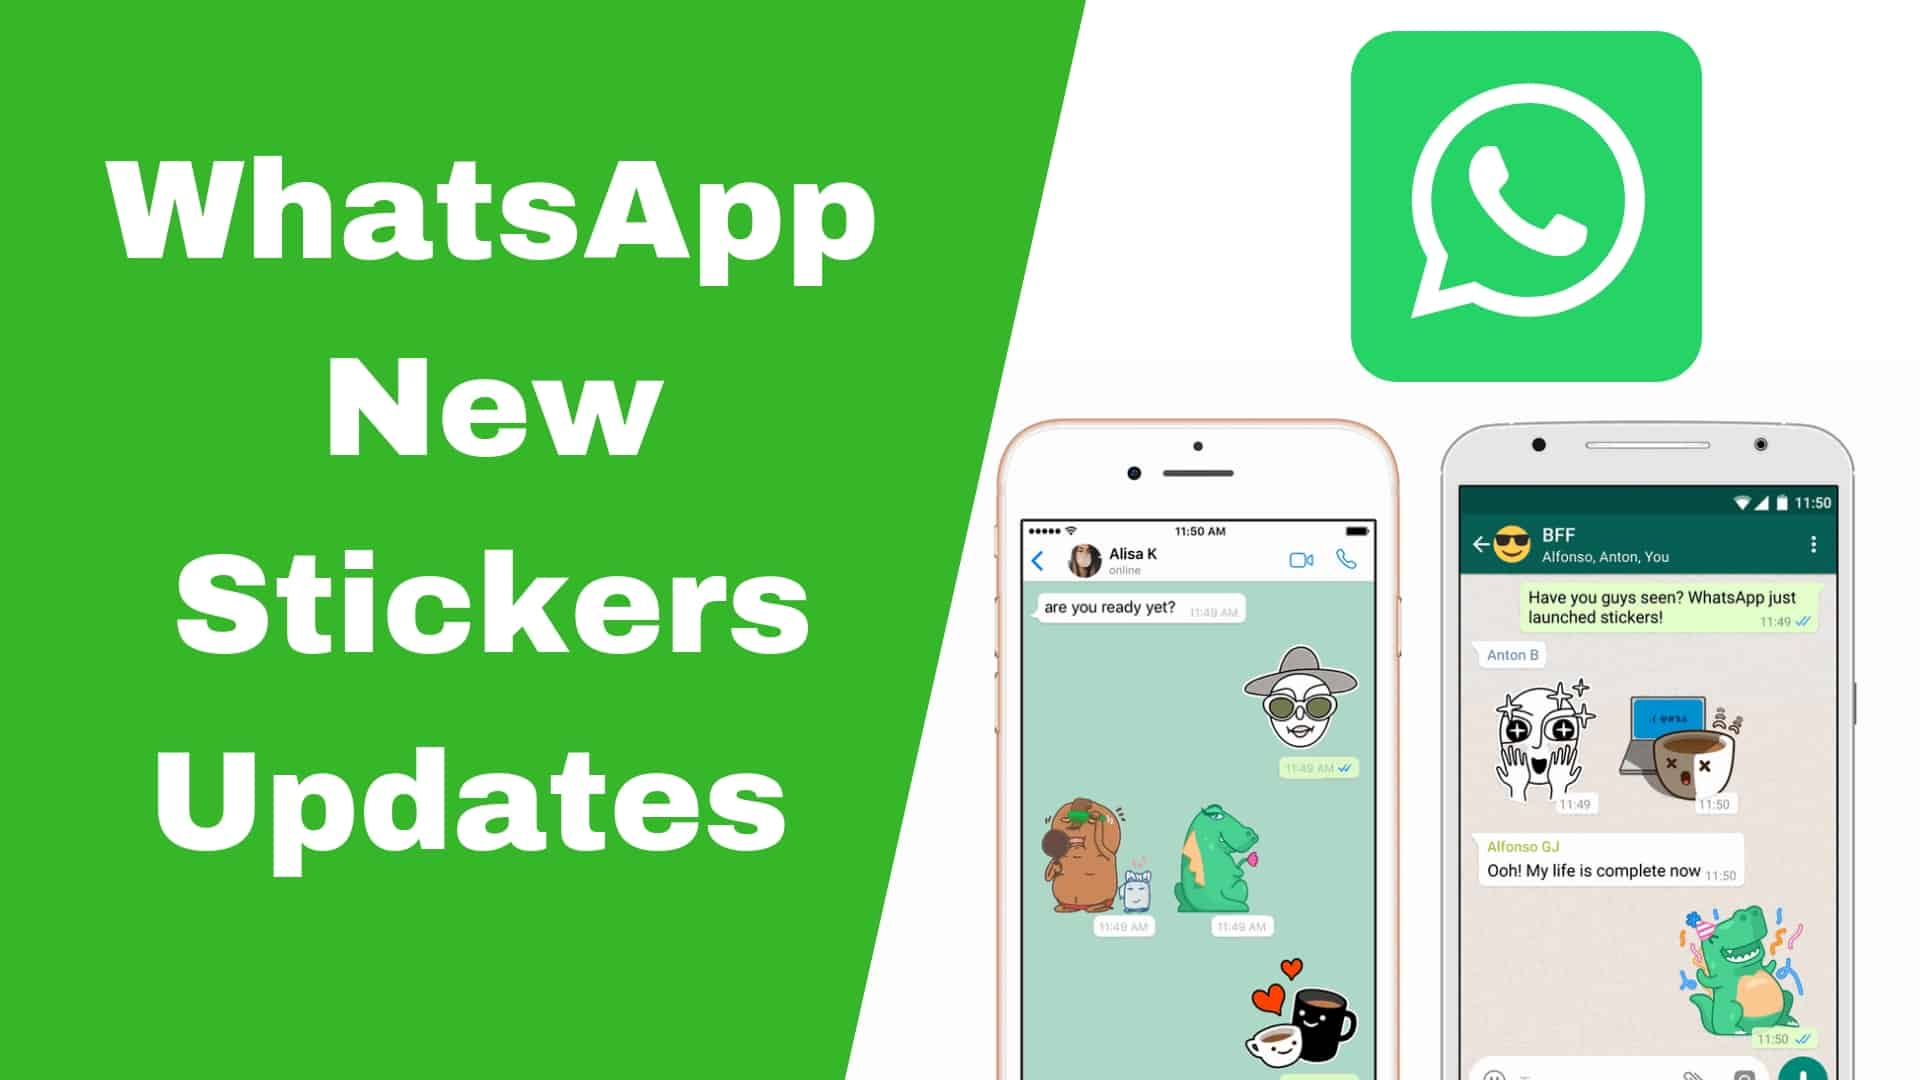 WhatsApp New Stickers Updates